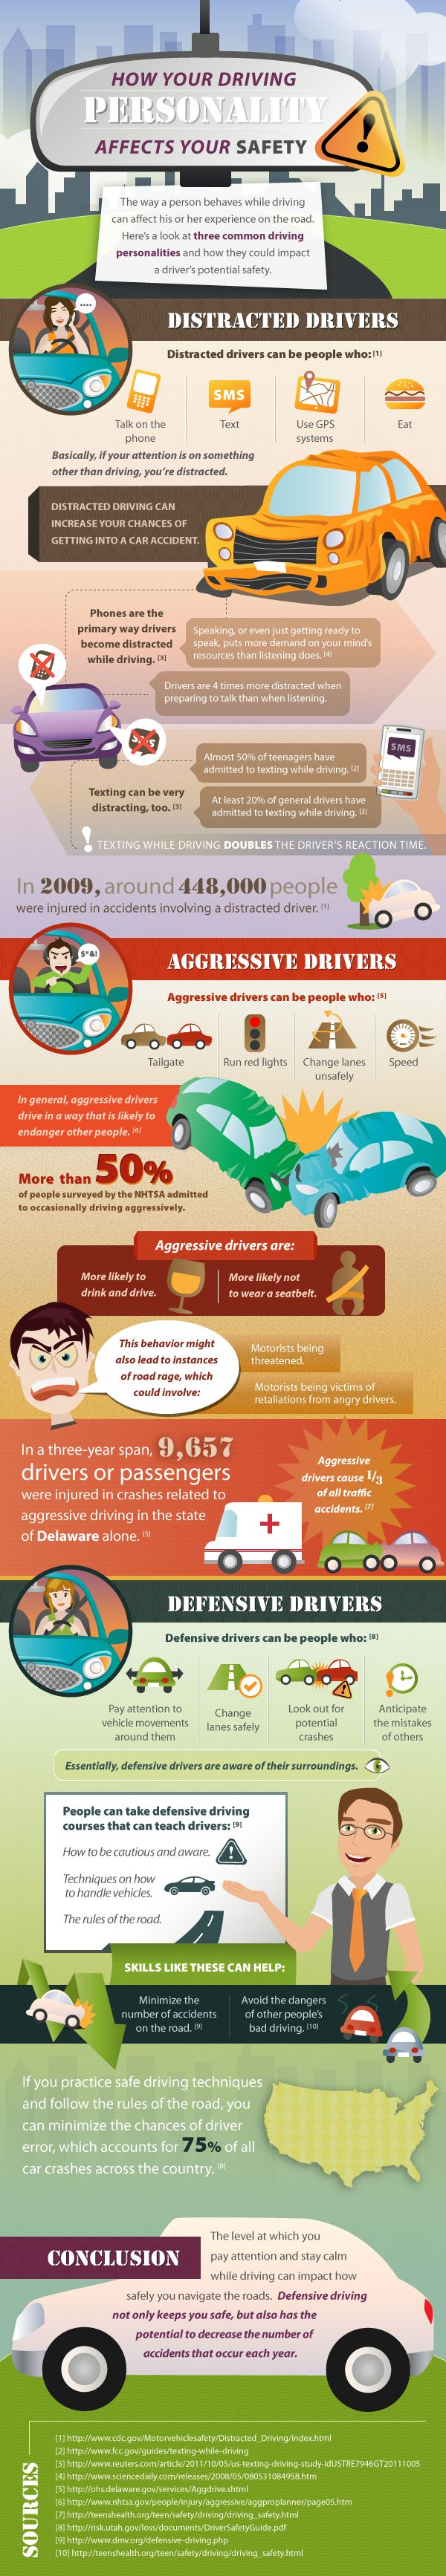 Car colour affects road safety - The Way A Person Behaves While Driving Can Affect His Or Her Experience On The Road Driving Safetydistracted Drivingdefensive Drivingcar